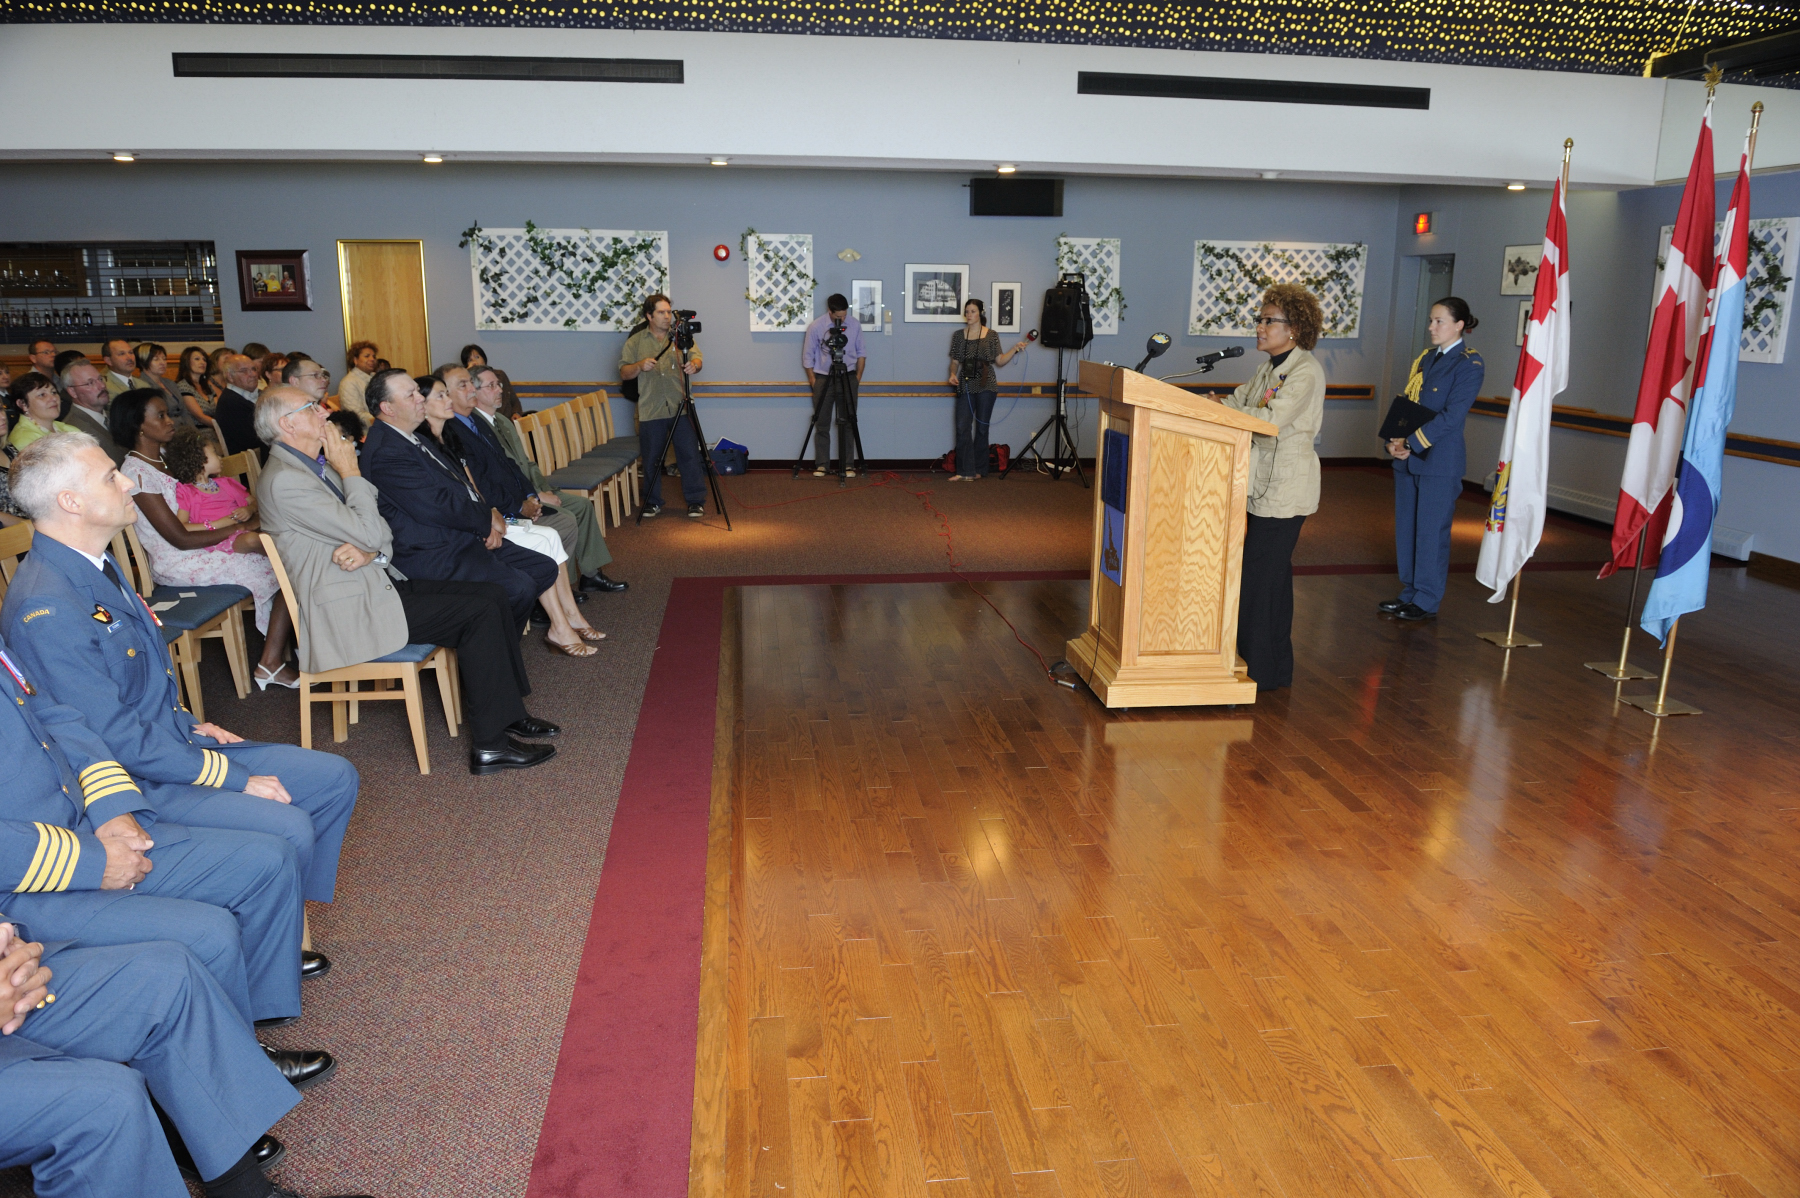 Her Excellency addressed a few words to the Military and Civil staff and their families who gathered for the occasion.